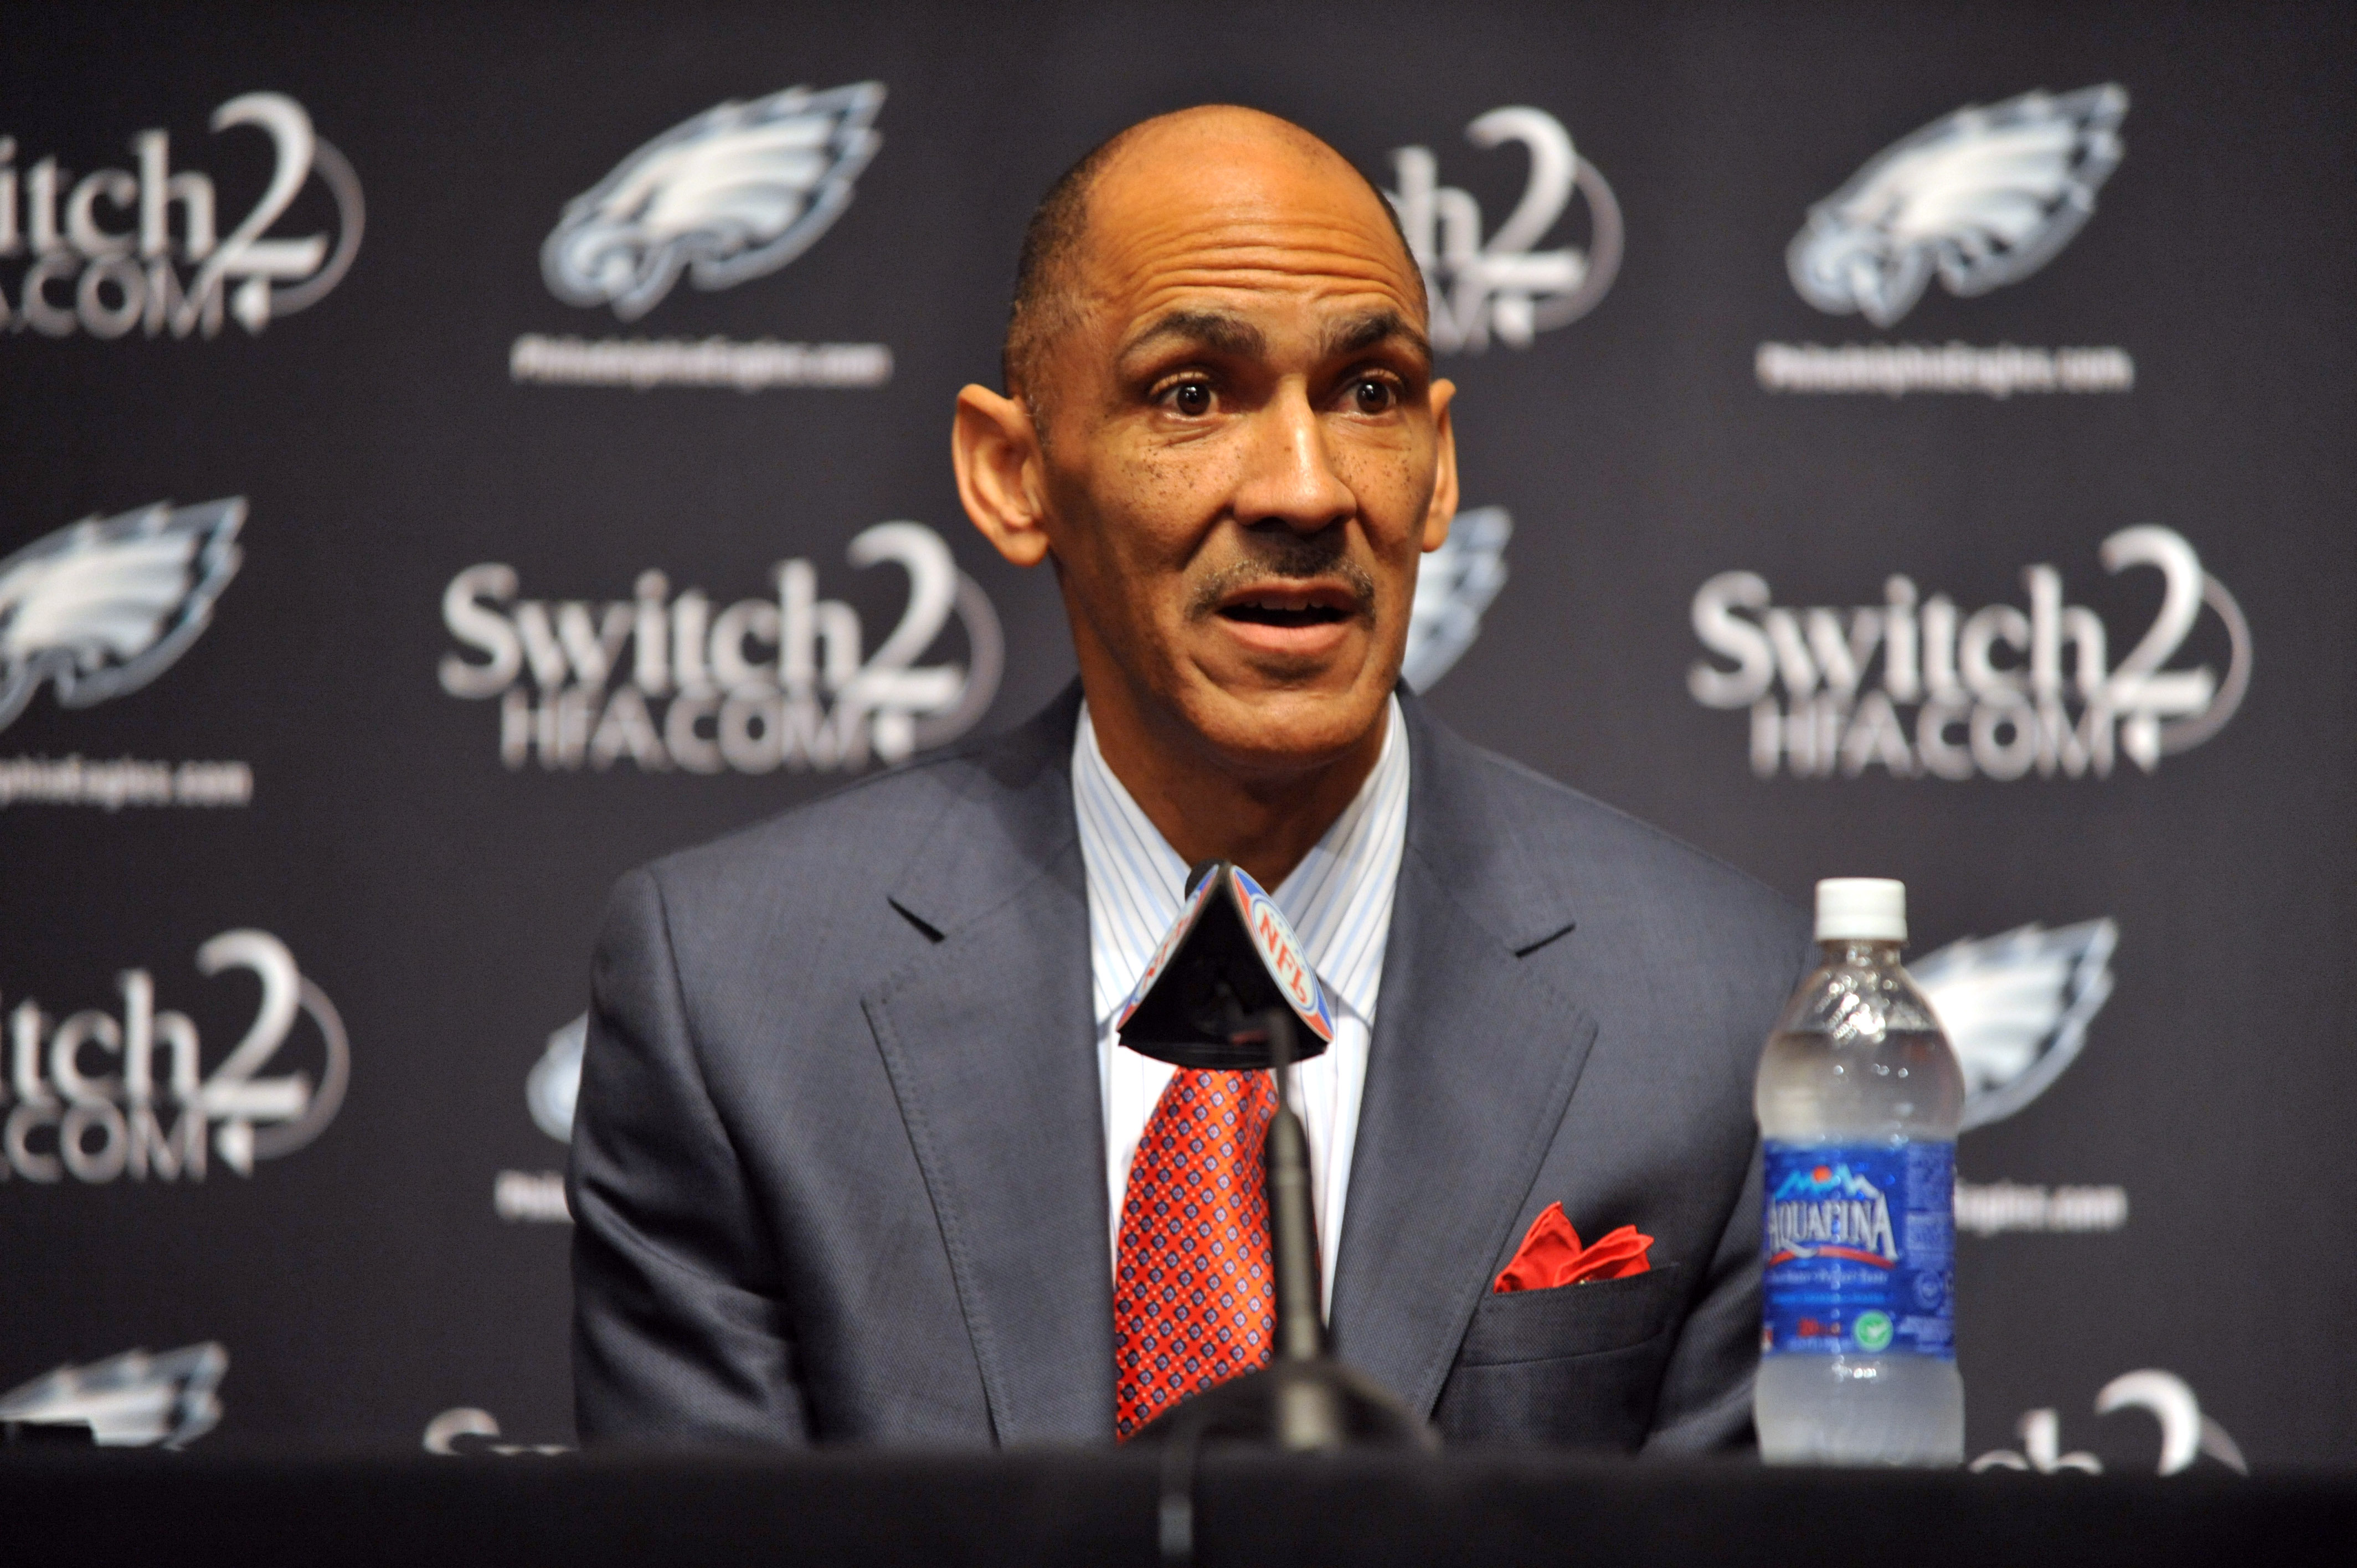 PHILADELPHIA - AUGUST 14: Tony Dungy speaks at a press conference introducing Michael Vick at the NovaCare Complex on August 14, 2009 in Philadelphia, Pennsylvania. Vick signed a one-year contract, with a second year option, with the Eagles.  (Photo by La